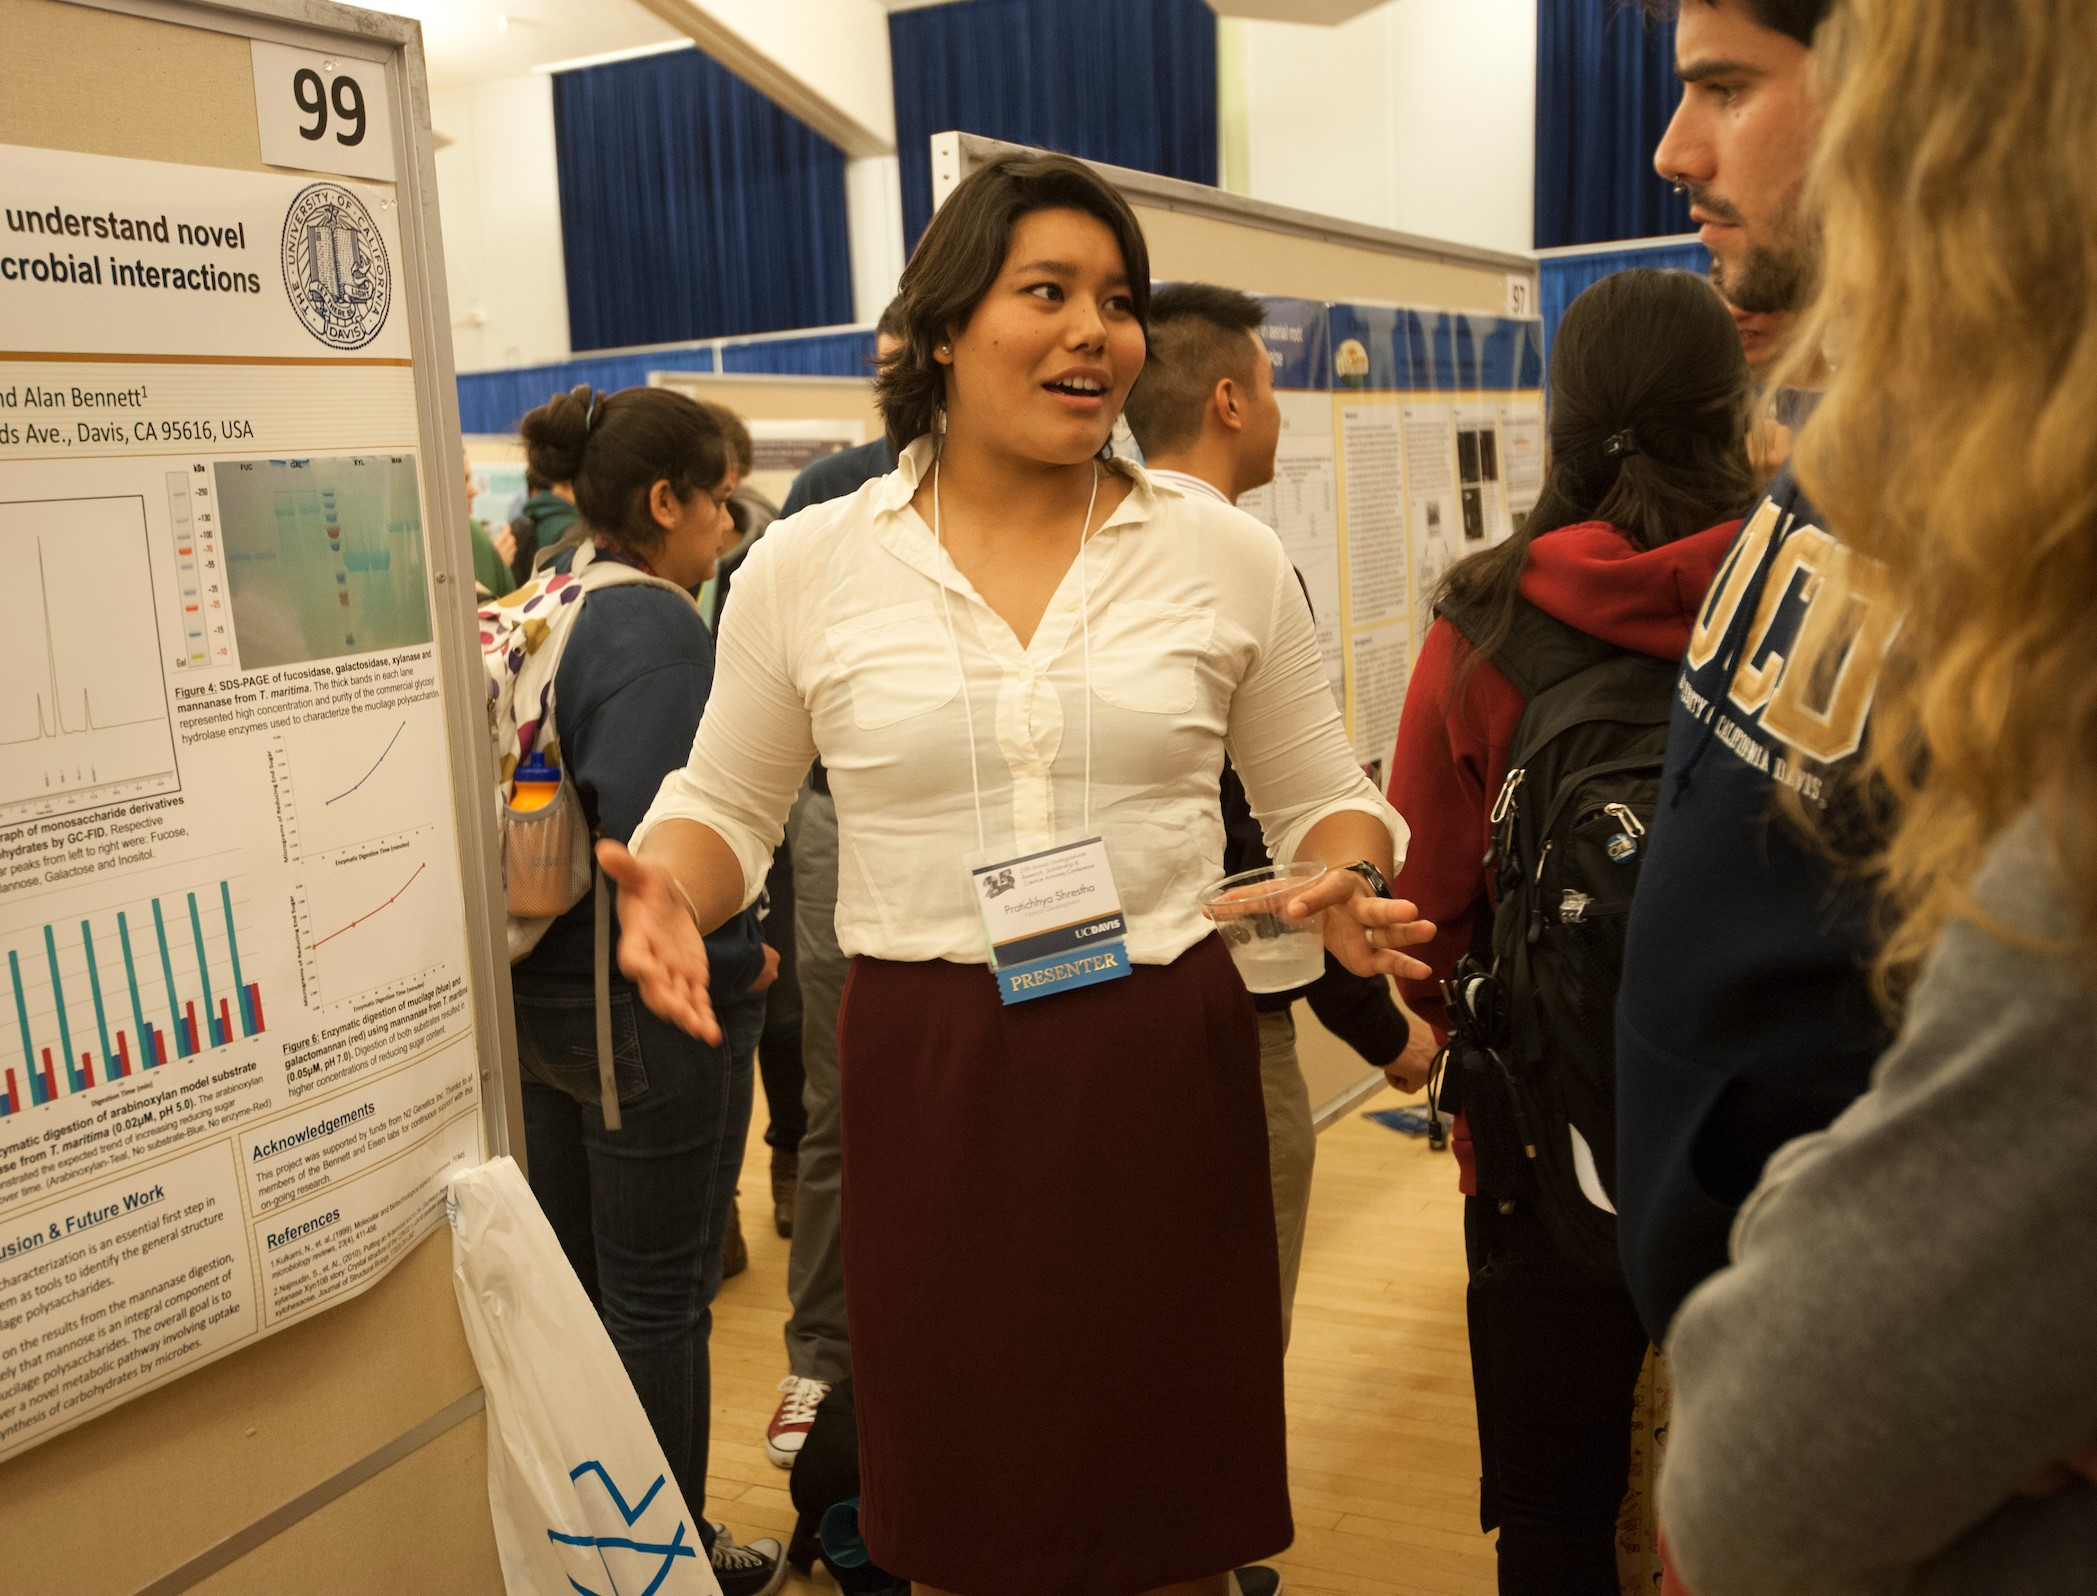 Woman talking in front of her scientific poster